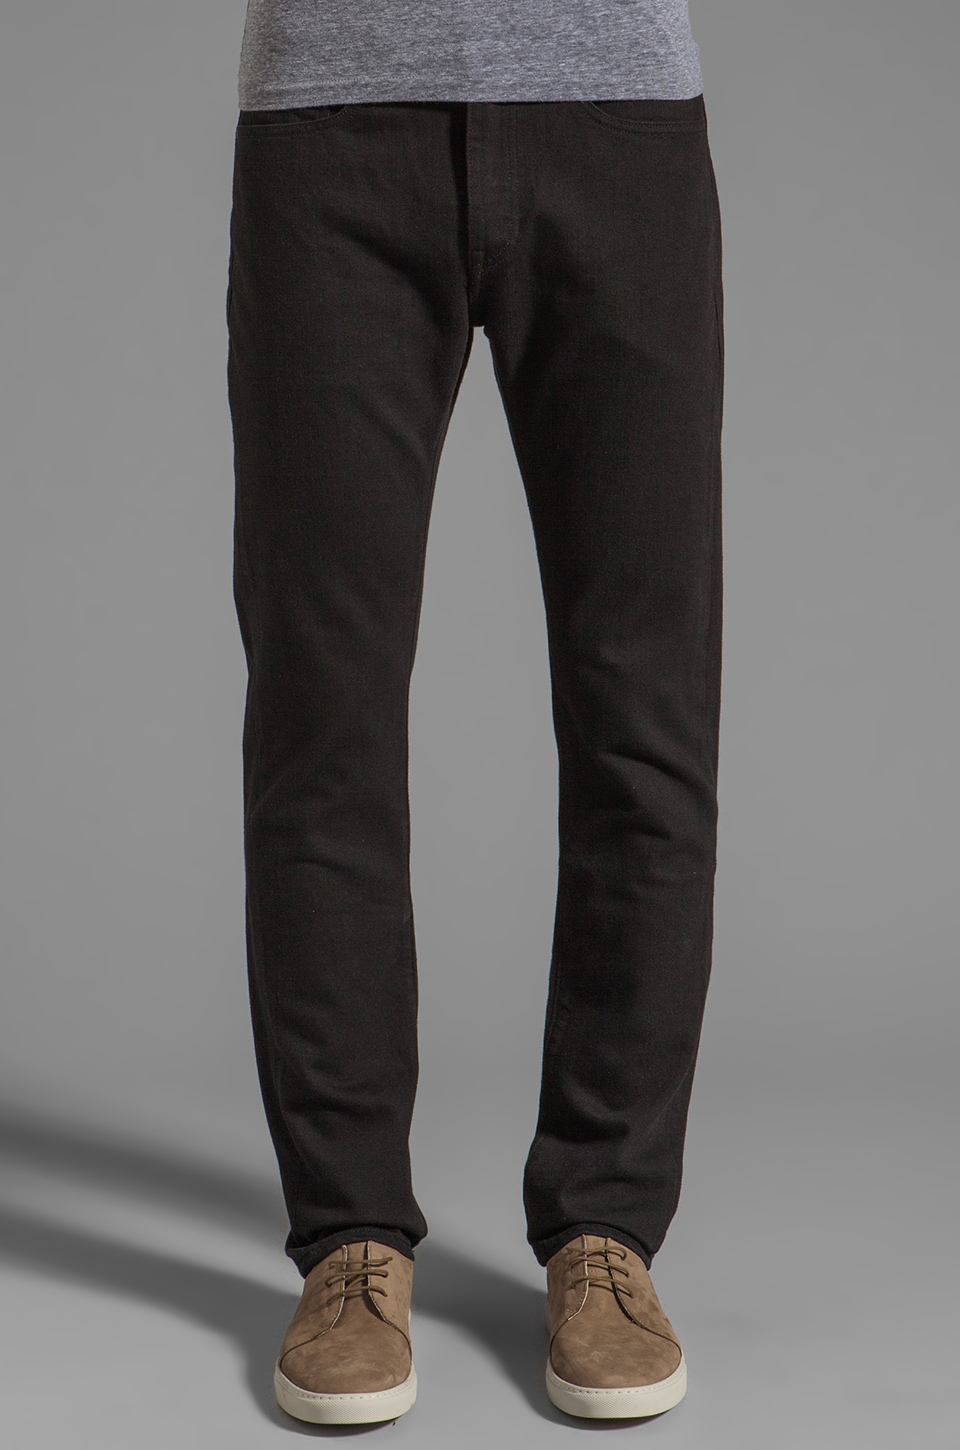 LEVI'S: Made & Crafted Tack Slim Jeans in Black Overdye